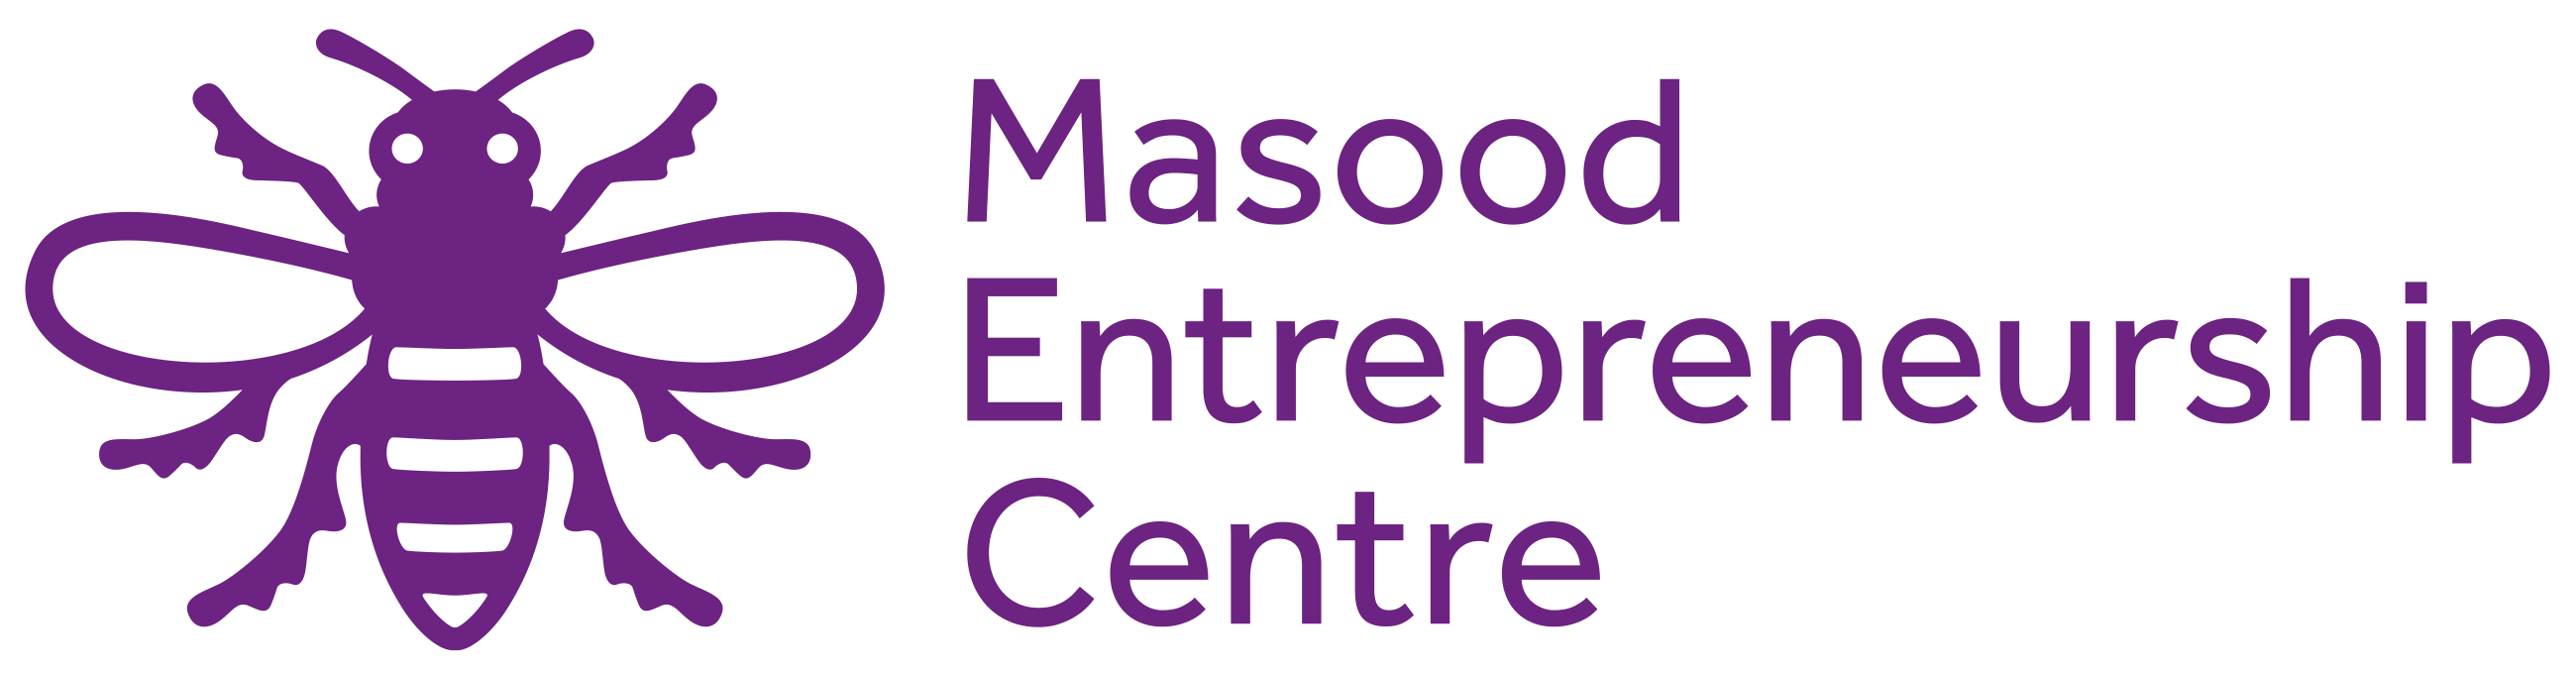 The Masood Entrepreneurship Centre at The University of Manchester